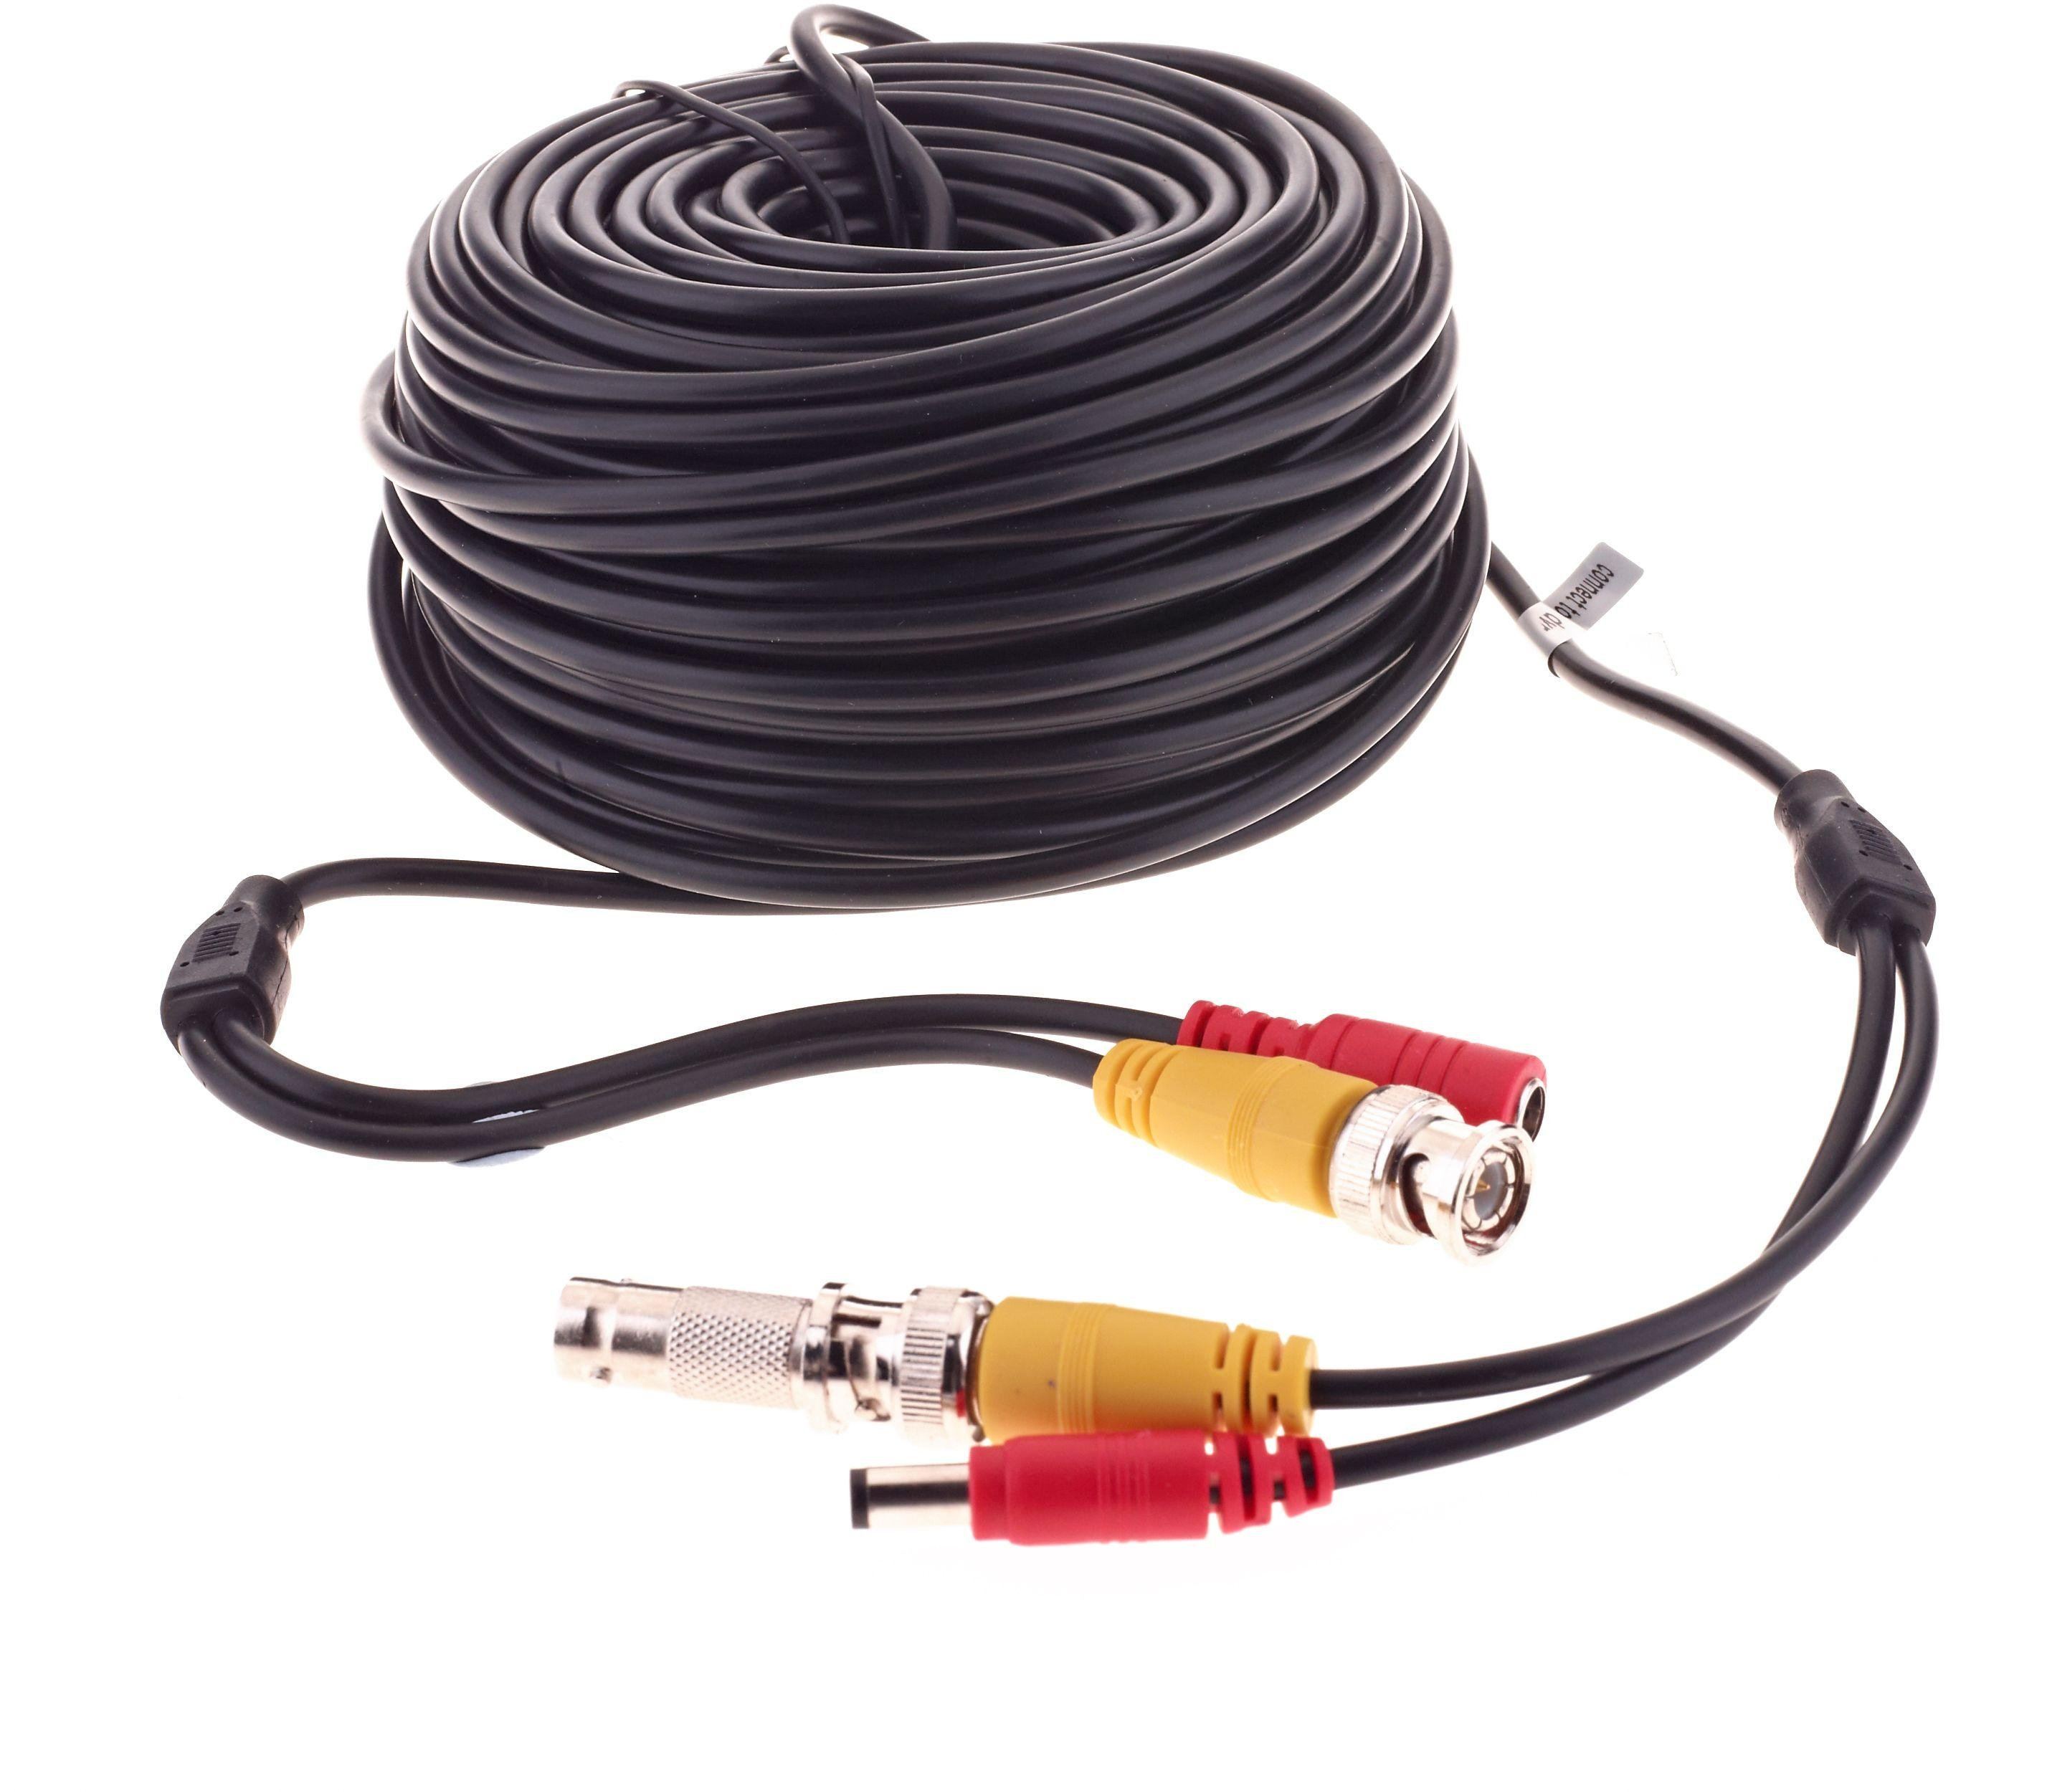 Yale Yale Easy Fit Extension Cable - 30m.